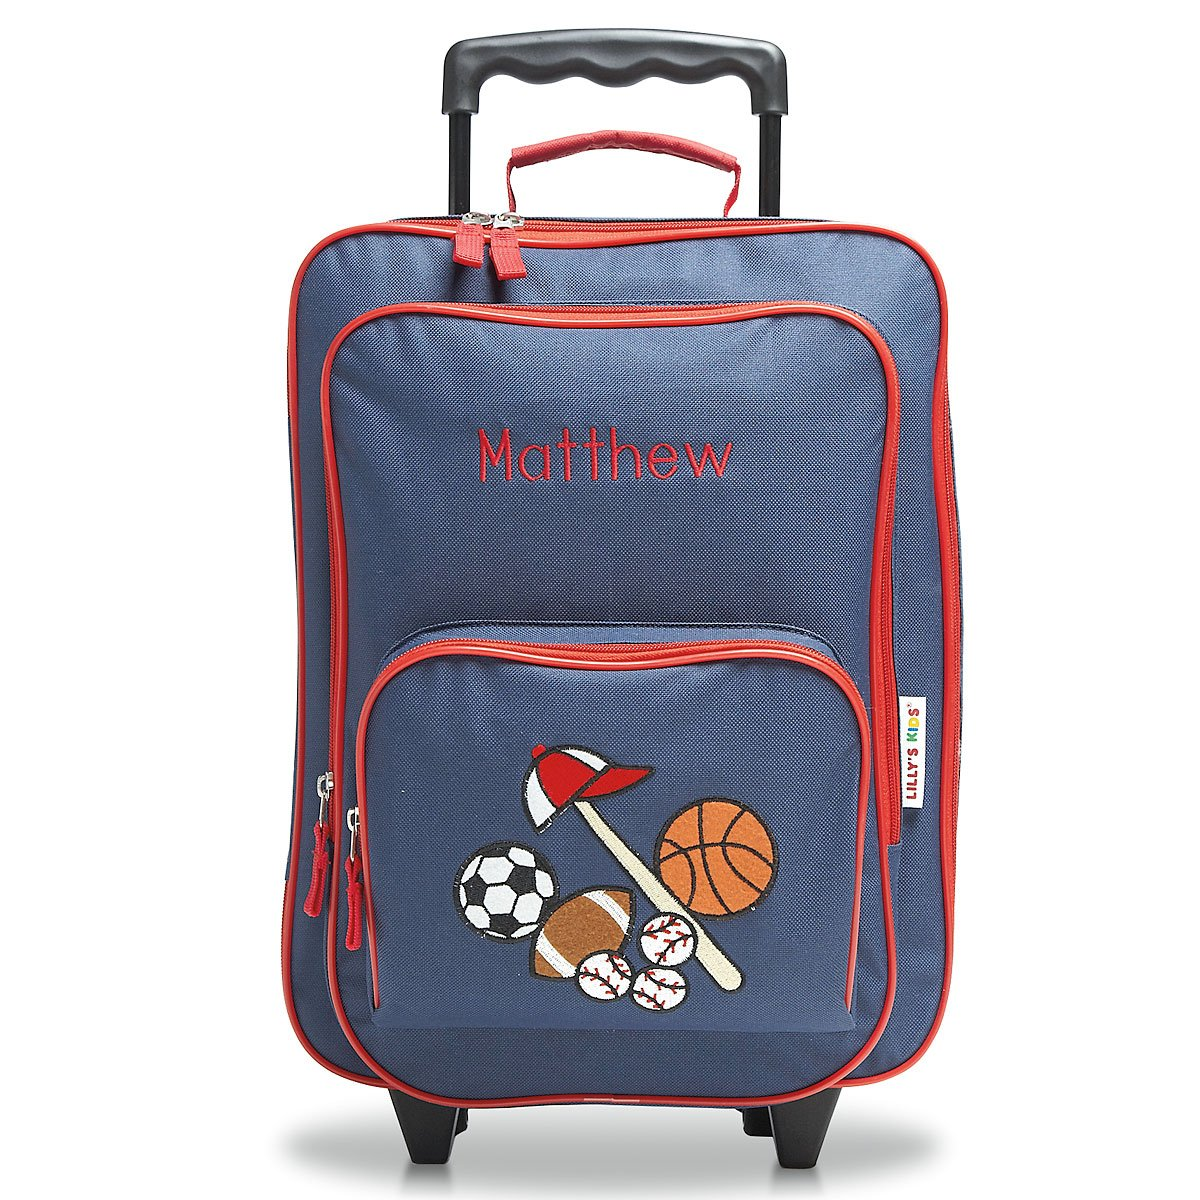 Personalized Rolling Luggage for Kids - All Sports Design, 4.5'' x 12'' x 16.75''H, By Lillian Vernon